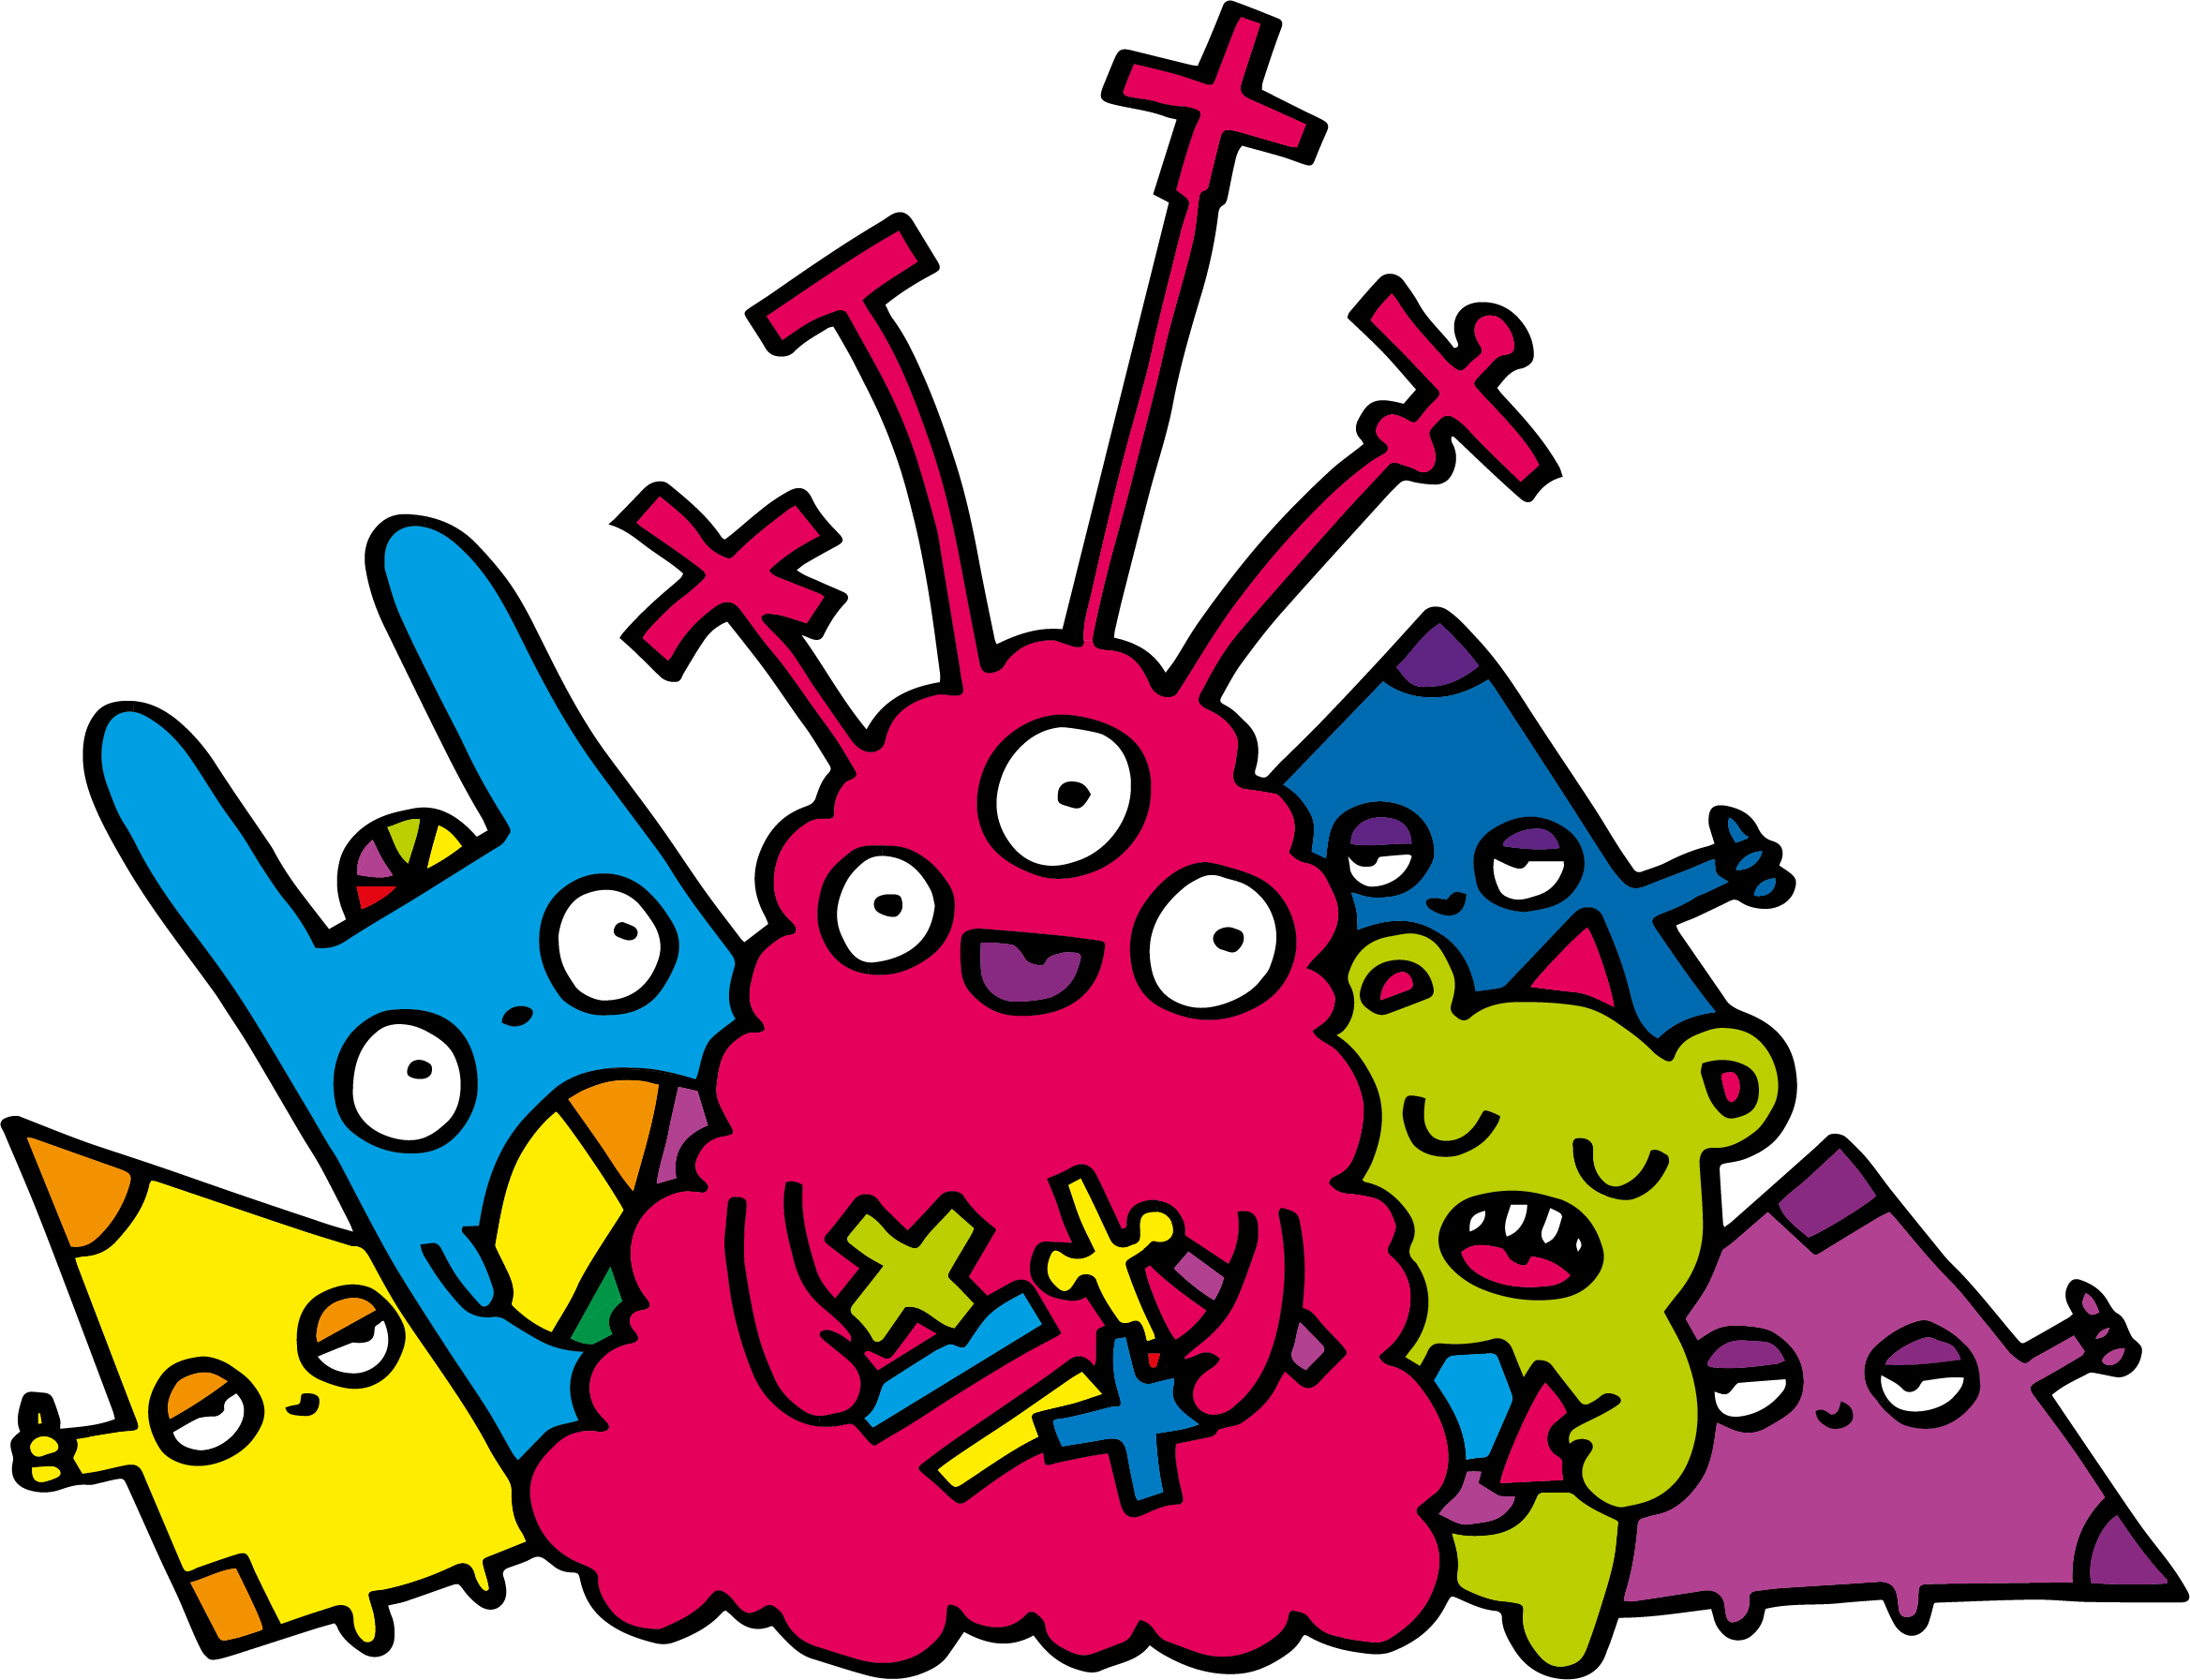 Colourful illustration of maths monsters